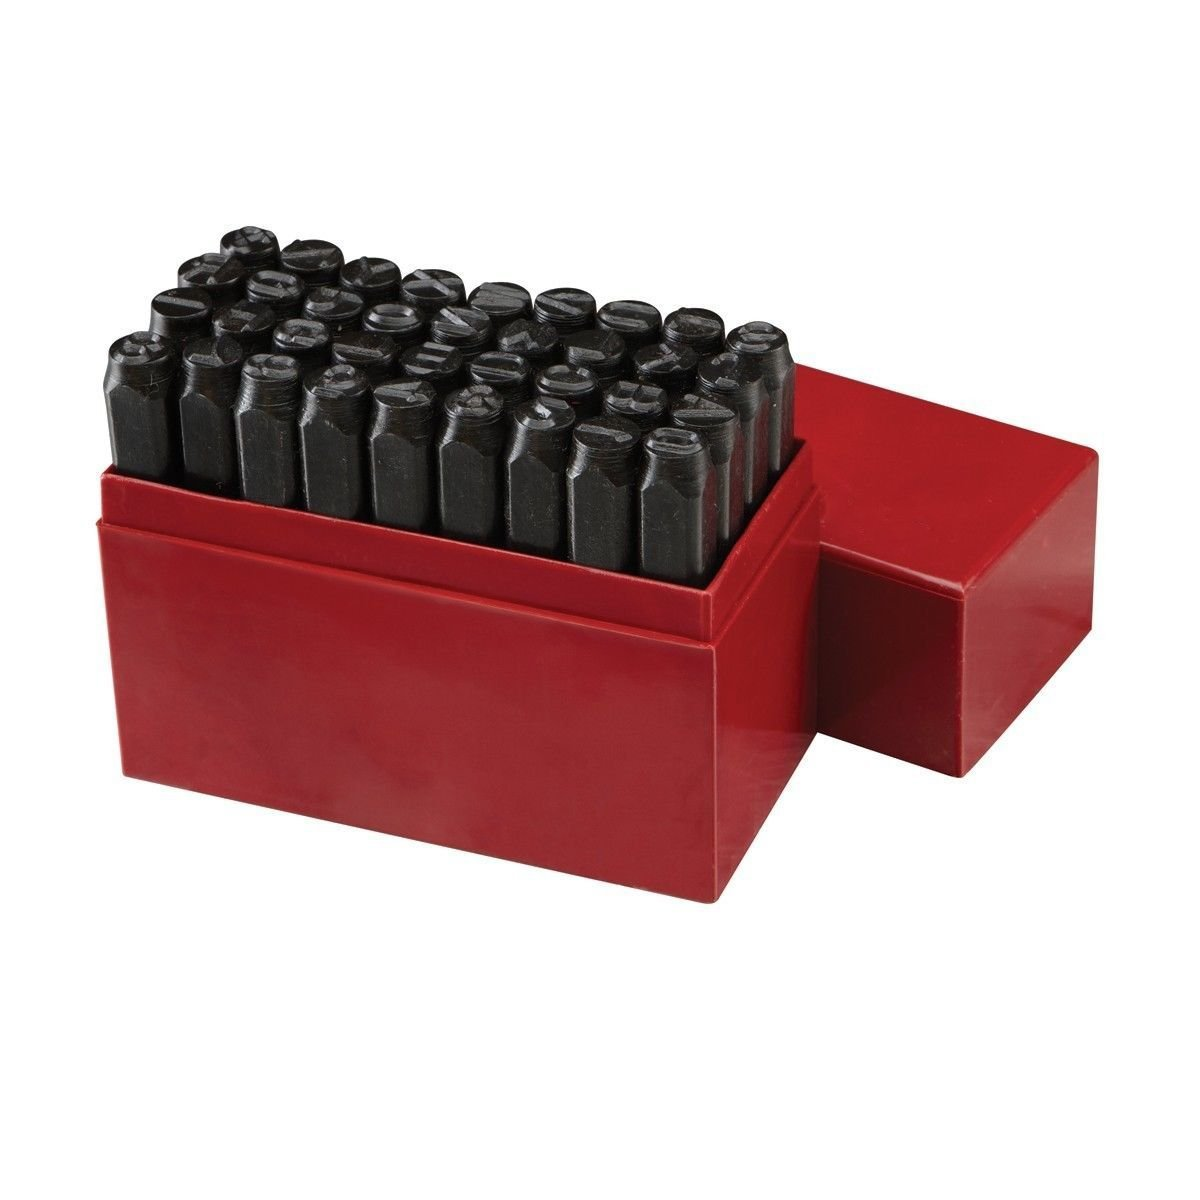 ESKALEX>>36pc 3/8'' STEEL METAL PUNCH LETTER & NUMBER STAMP STAMPING KIT SET PLASTIC CASE And 3/8'' A-Z, 0-8 (Turn 6 Upside Down for 9) >>10mm/3/8 Shaft>>Drop Forged, Heat Treated 45# Steel>>Ideal